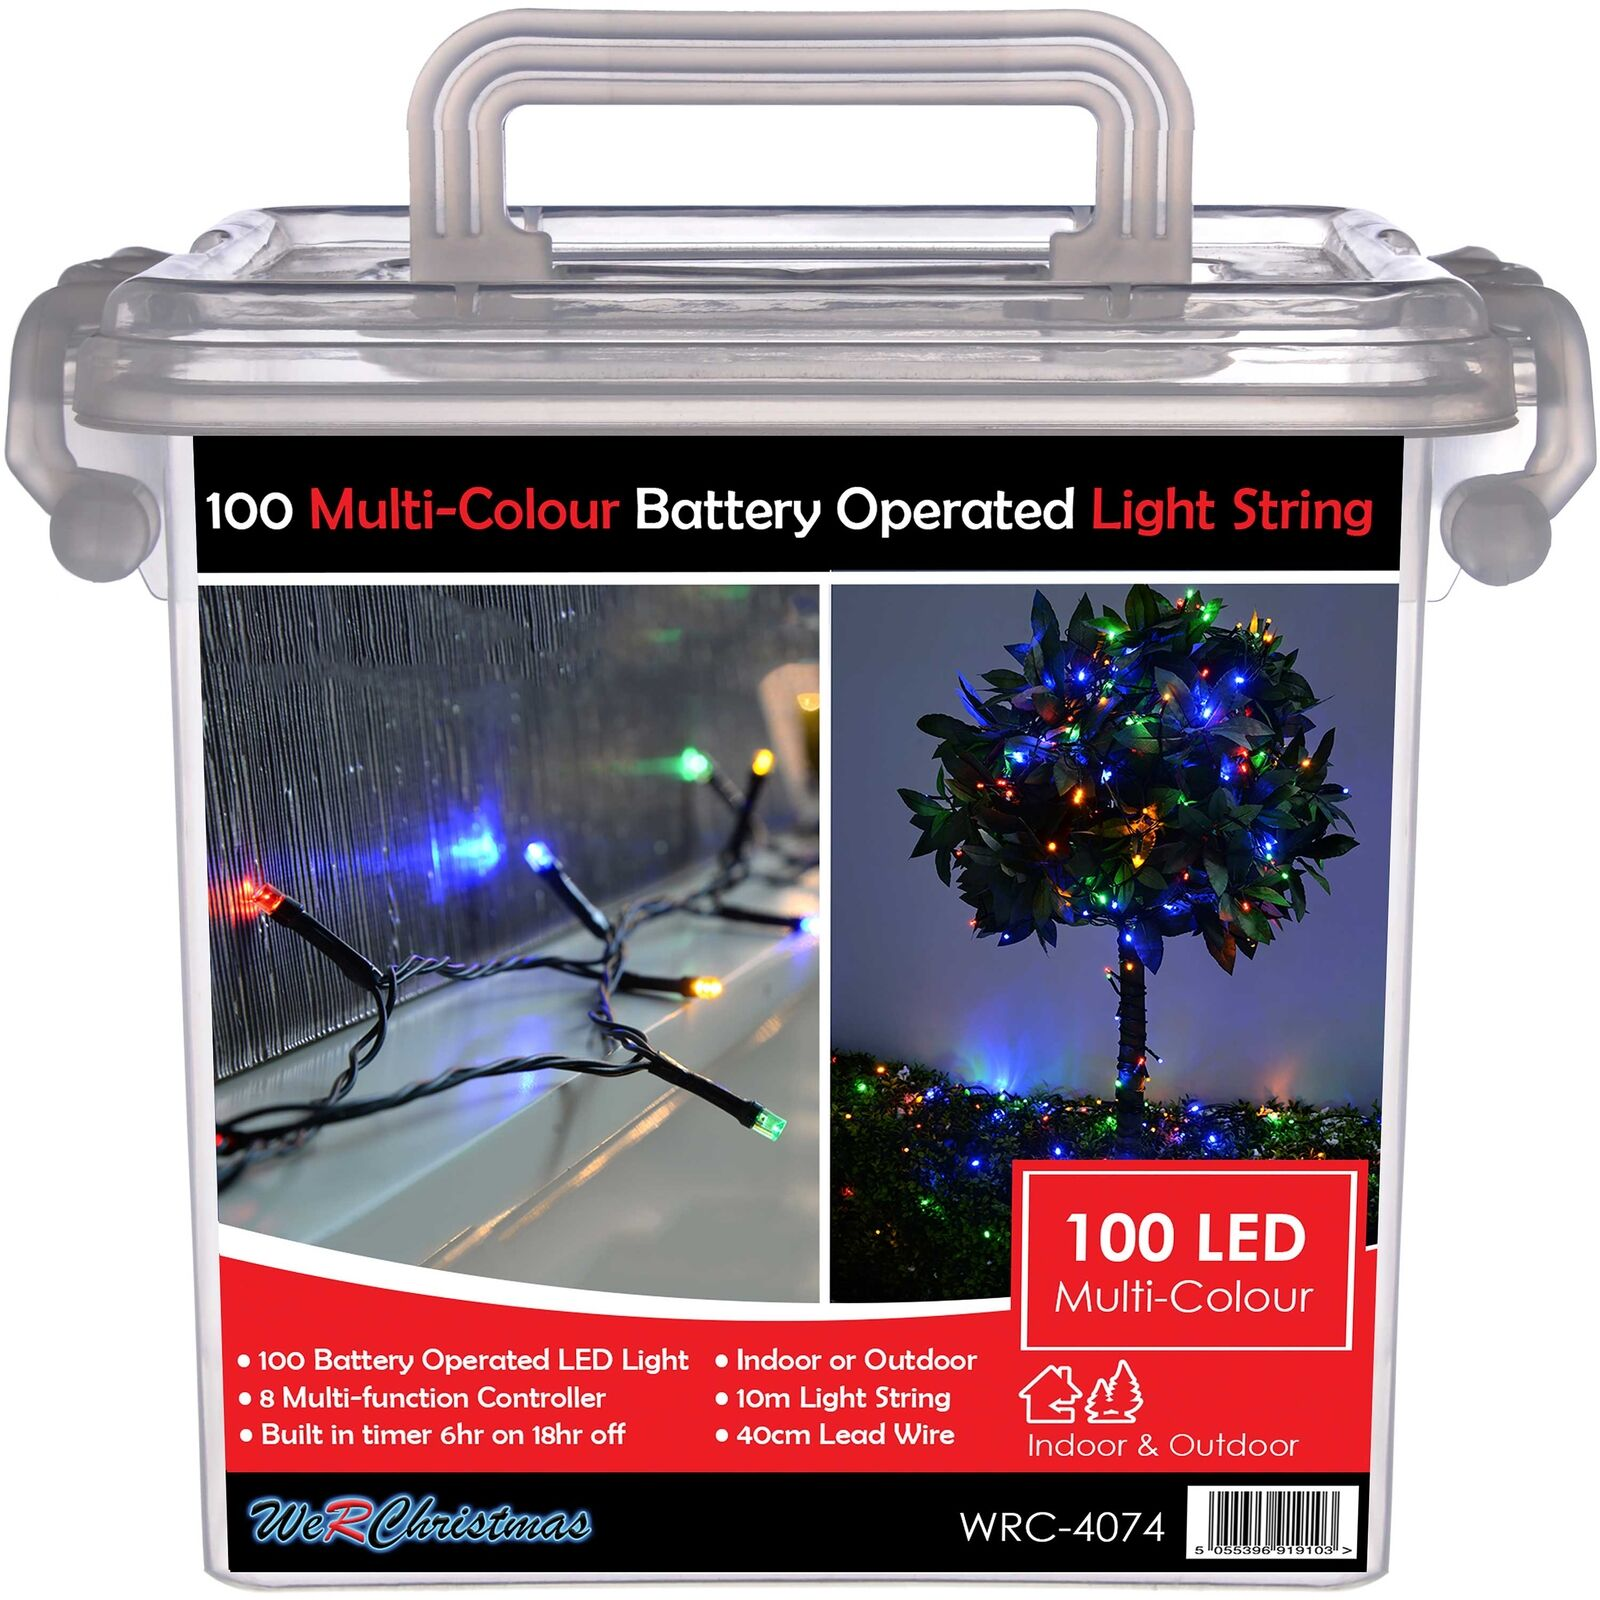 10 M Cable Outdoor Battery Operated 100 Led Light String With Built